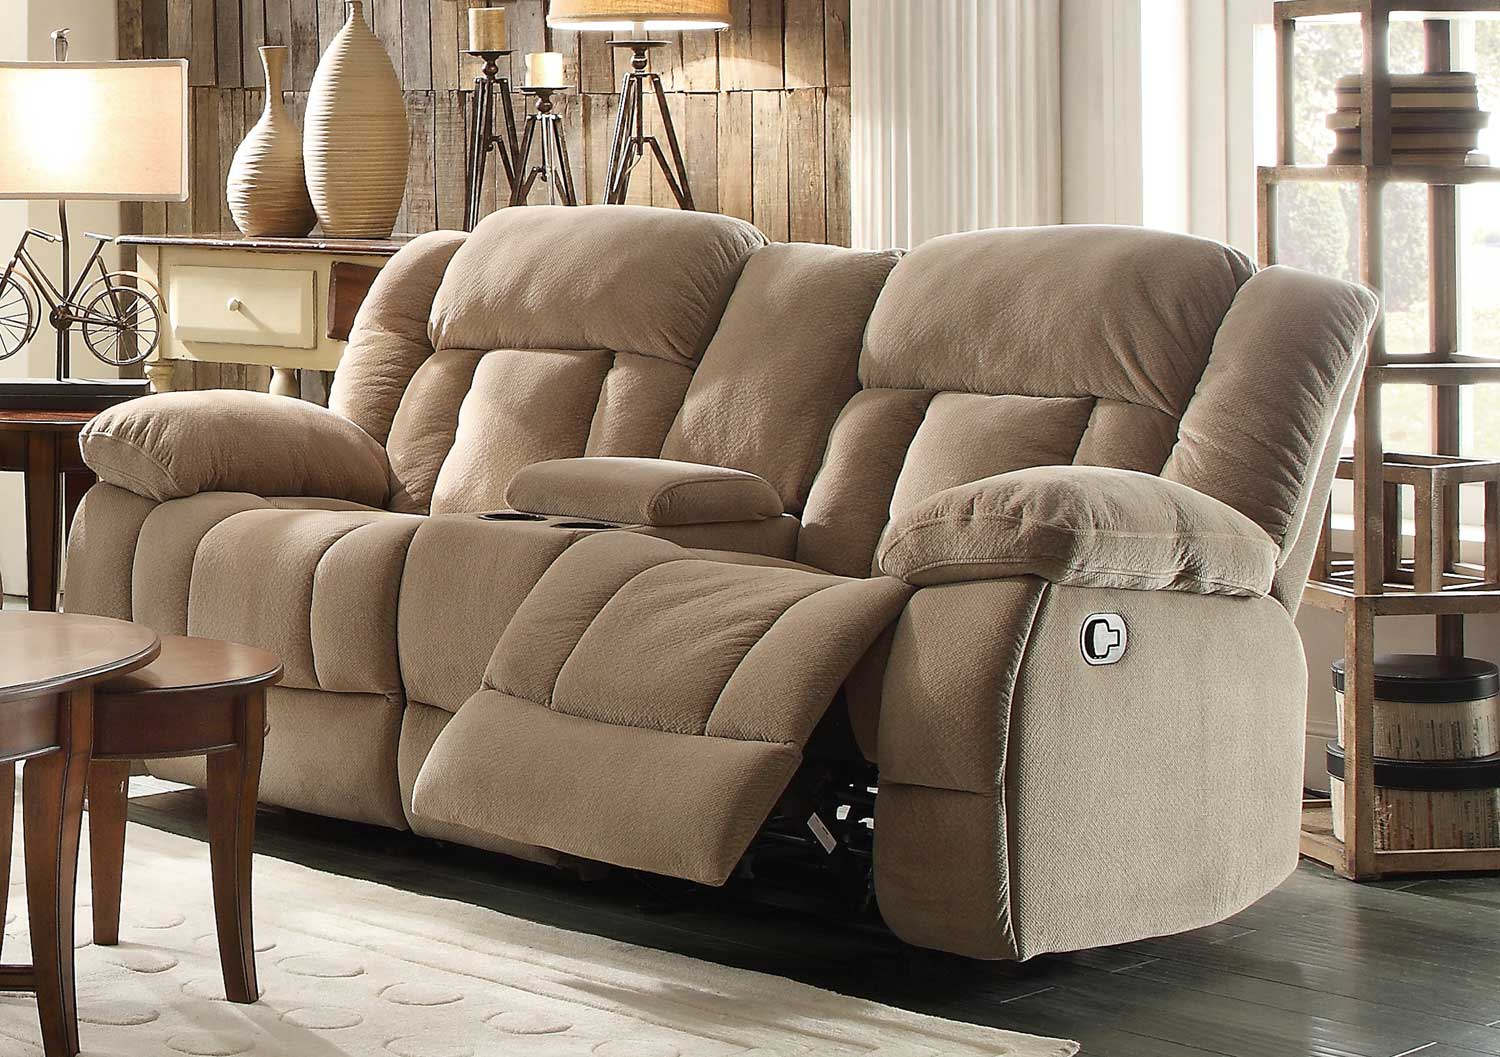 Elegant Reclining Loveseat With Center Console 81 With Additional Modern  Sofa Inspiration With Reclining Loveseat With Center Console